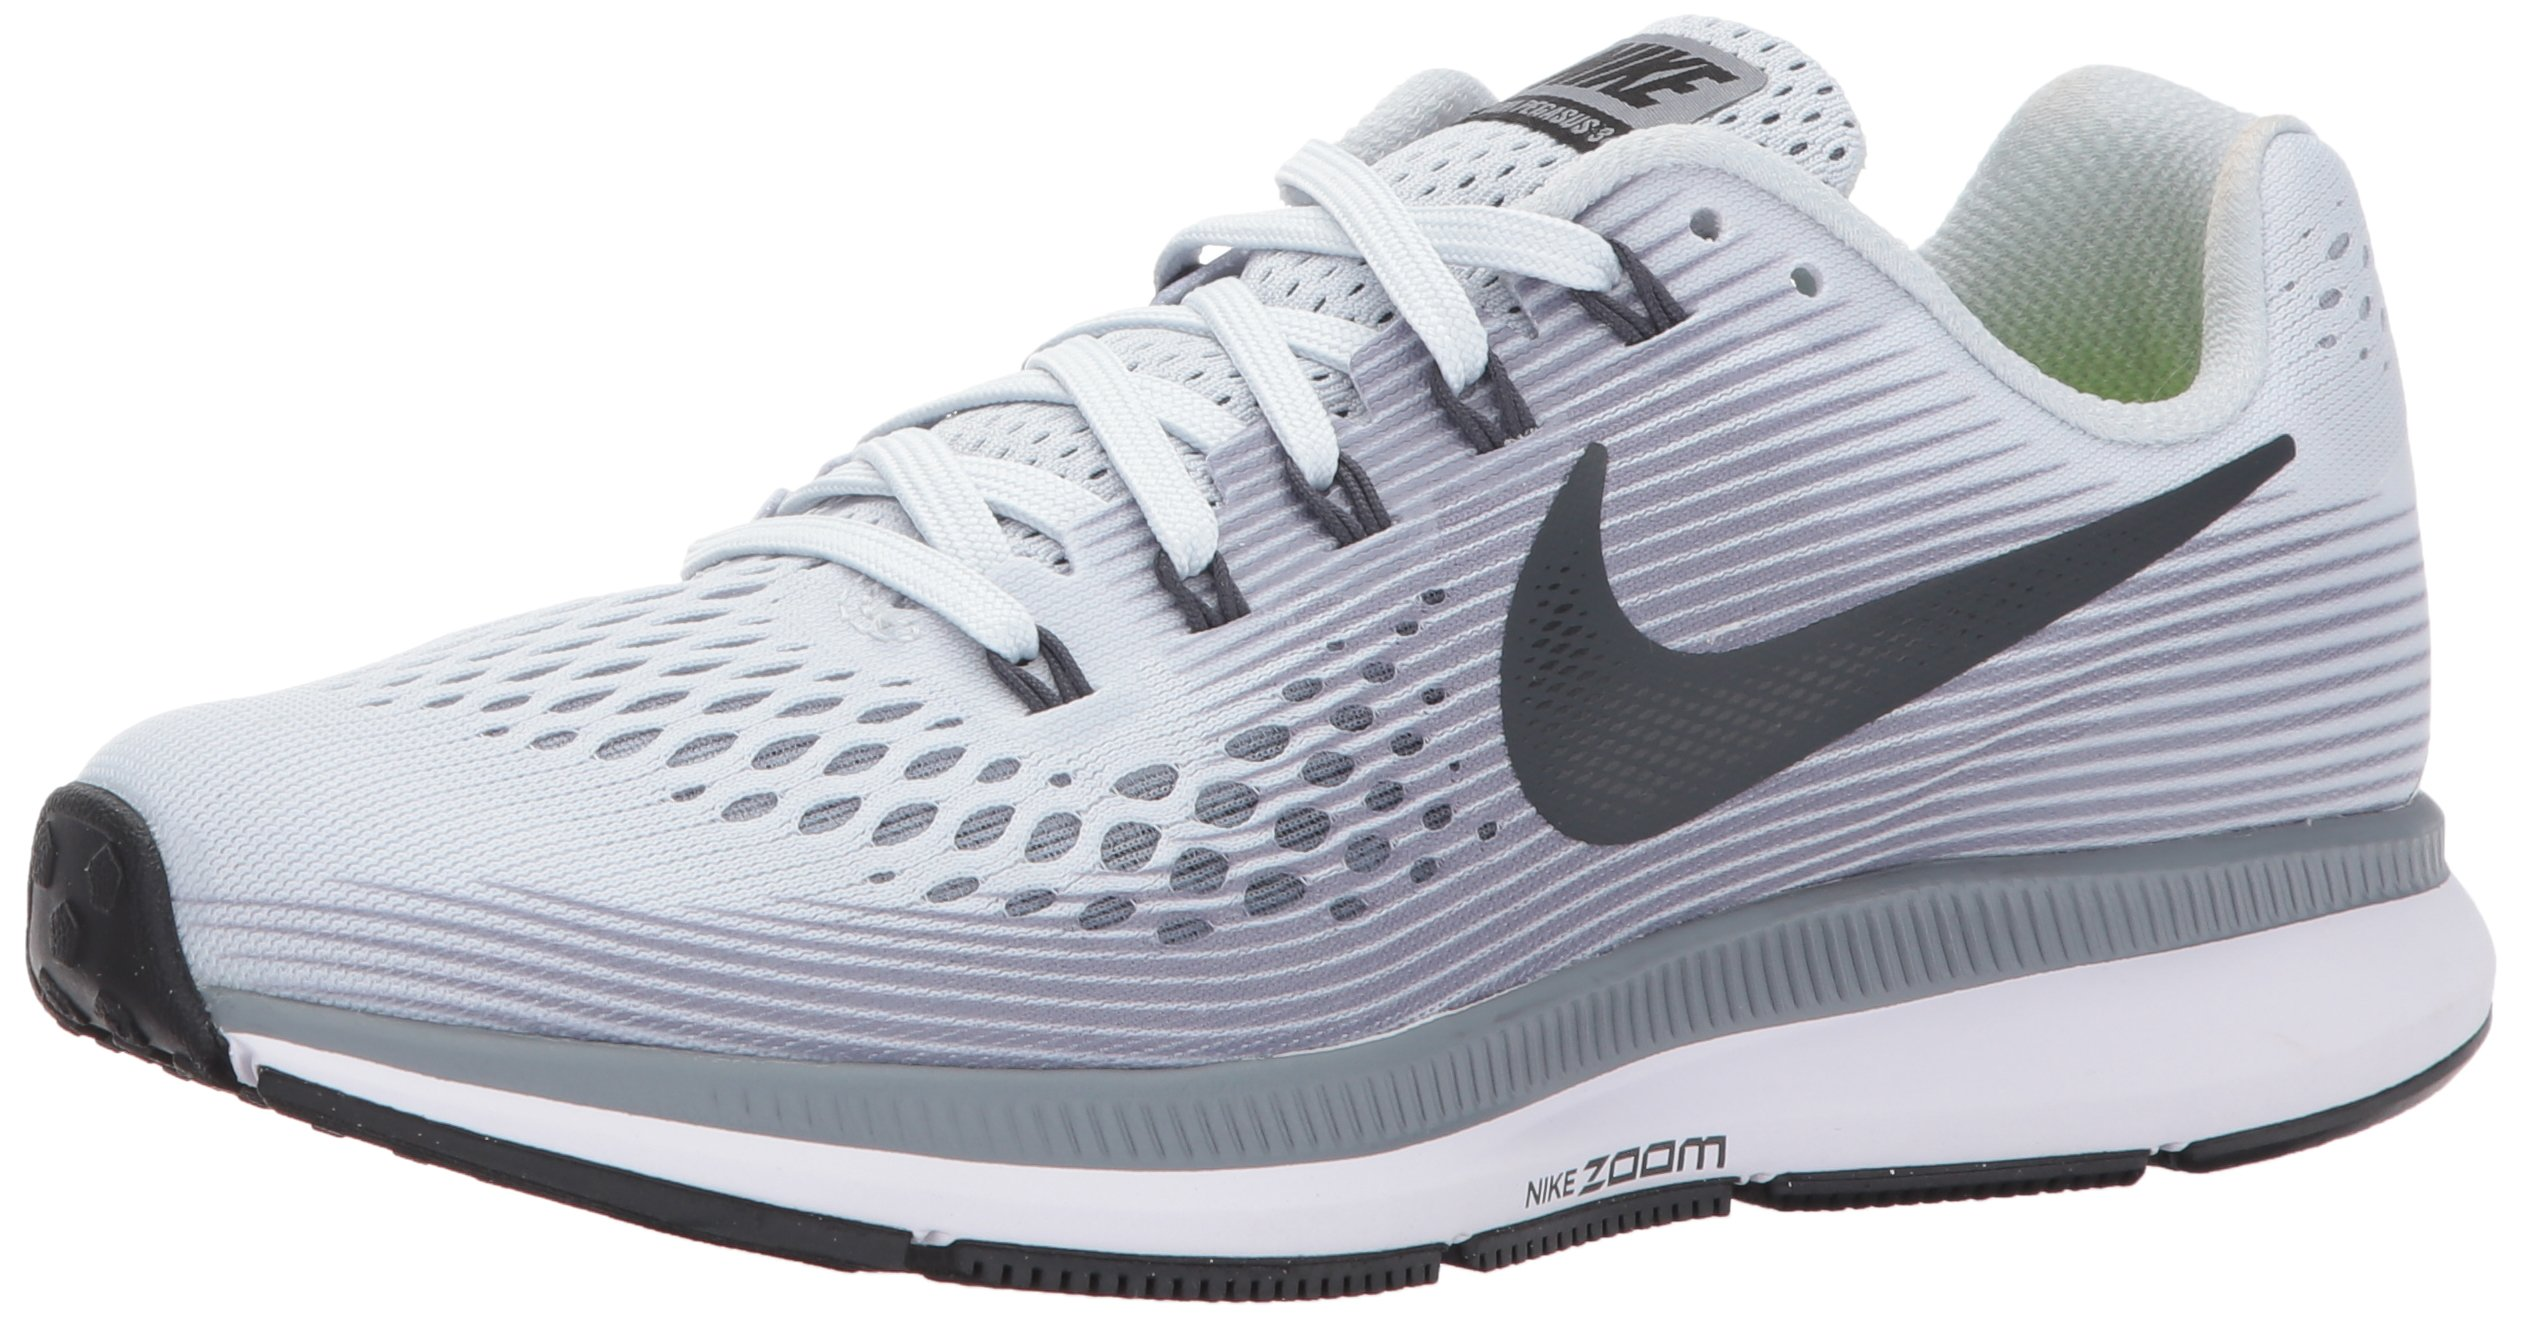 4b5ce9b01b0bd Nike Women's Air Zoom Pegasus 34 Running Shoe (8 M US, Pure Platinum/Cool  Grey/Black/Anthracite)